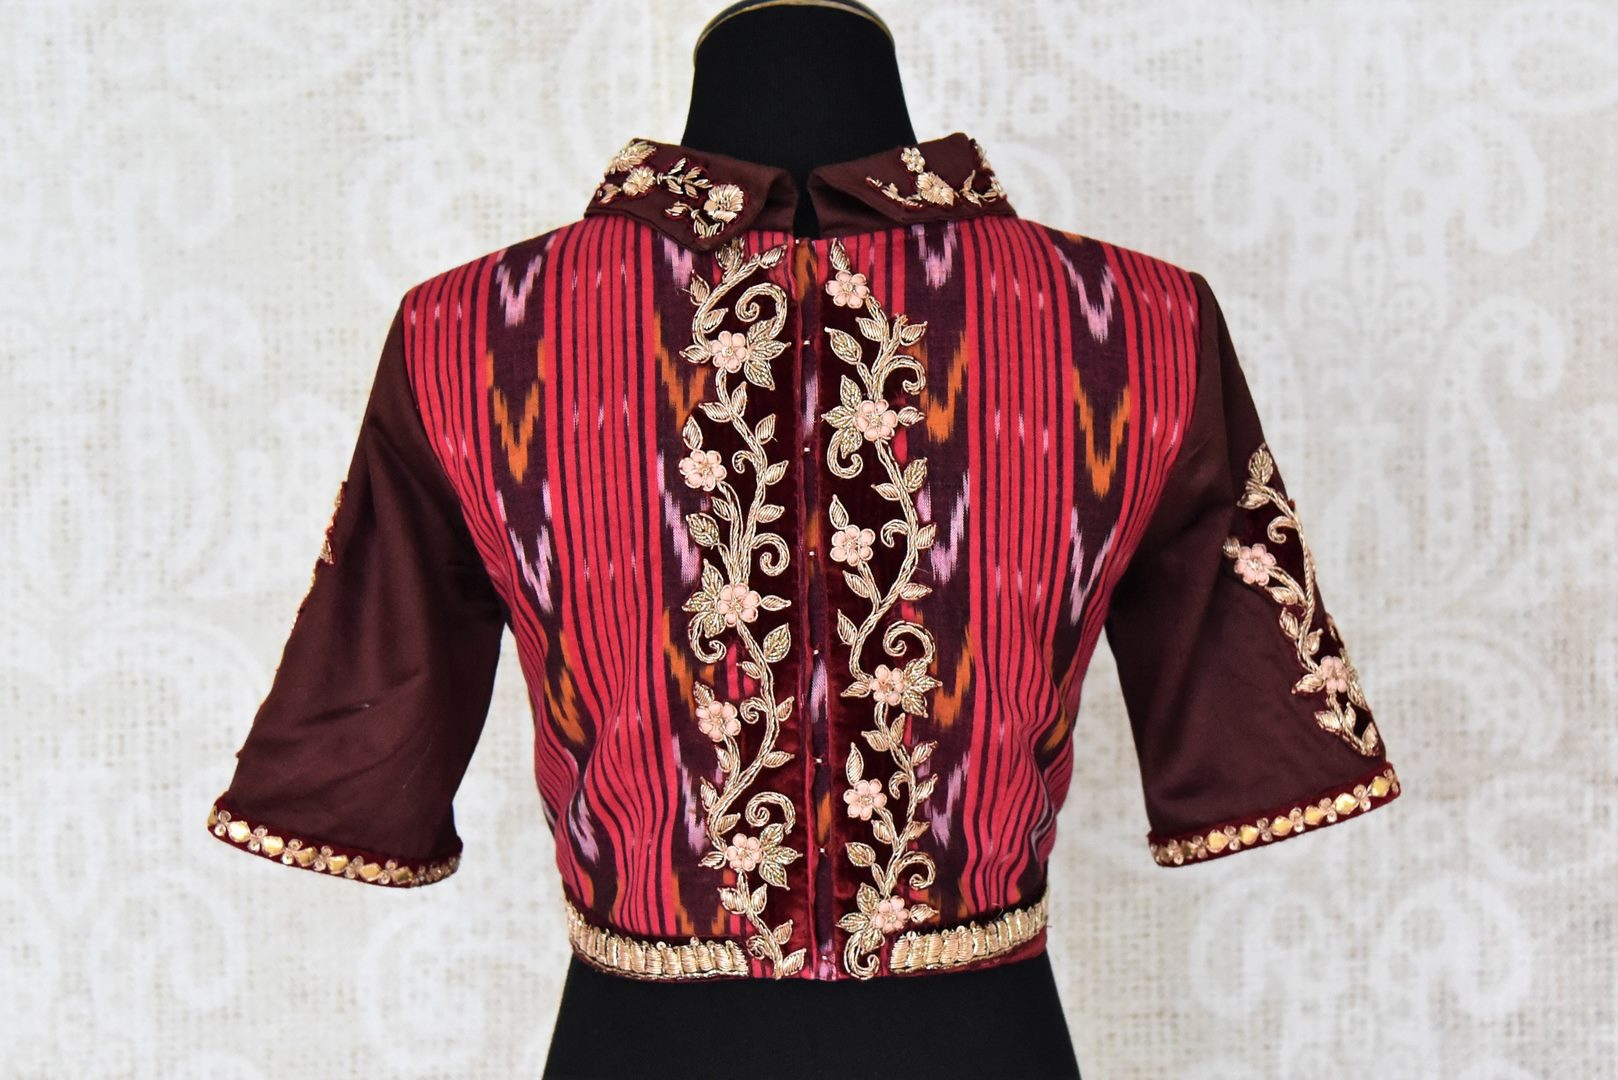 Buy maroon ikkat cotton silk embroidered saree blouse online in USA. Elevate your traditional Indian sarees with matching and contrasting readymade saree blouses from Pure Elegance Indian clothing store in USA.-back